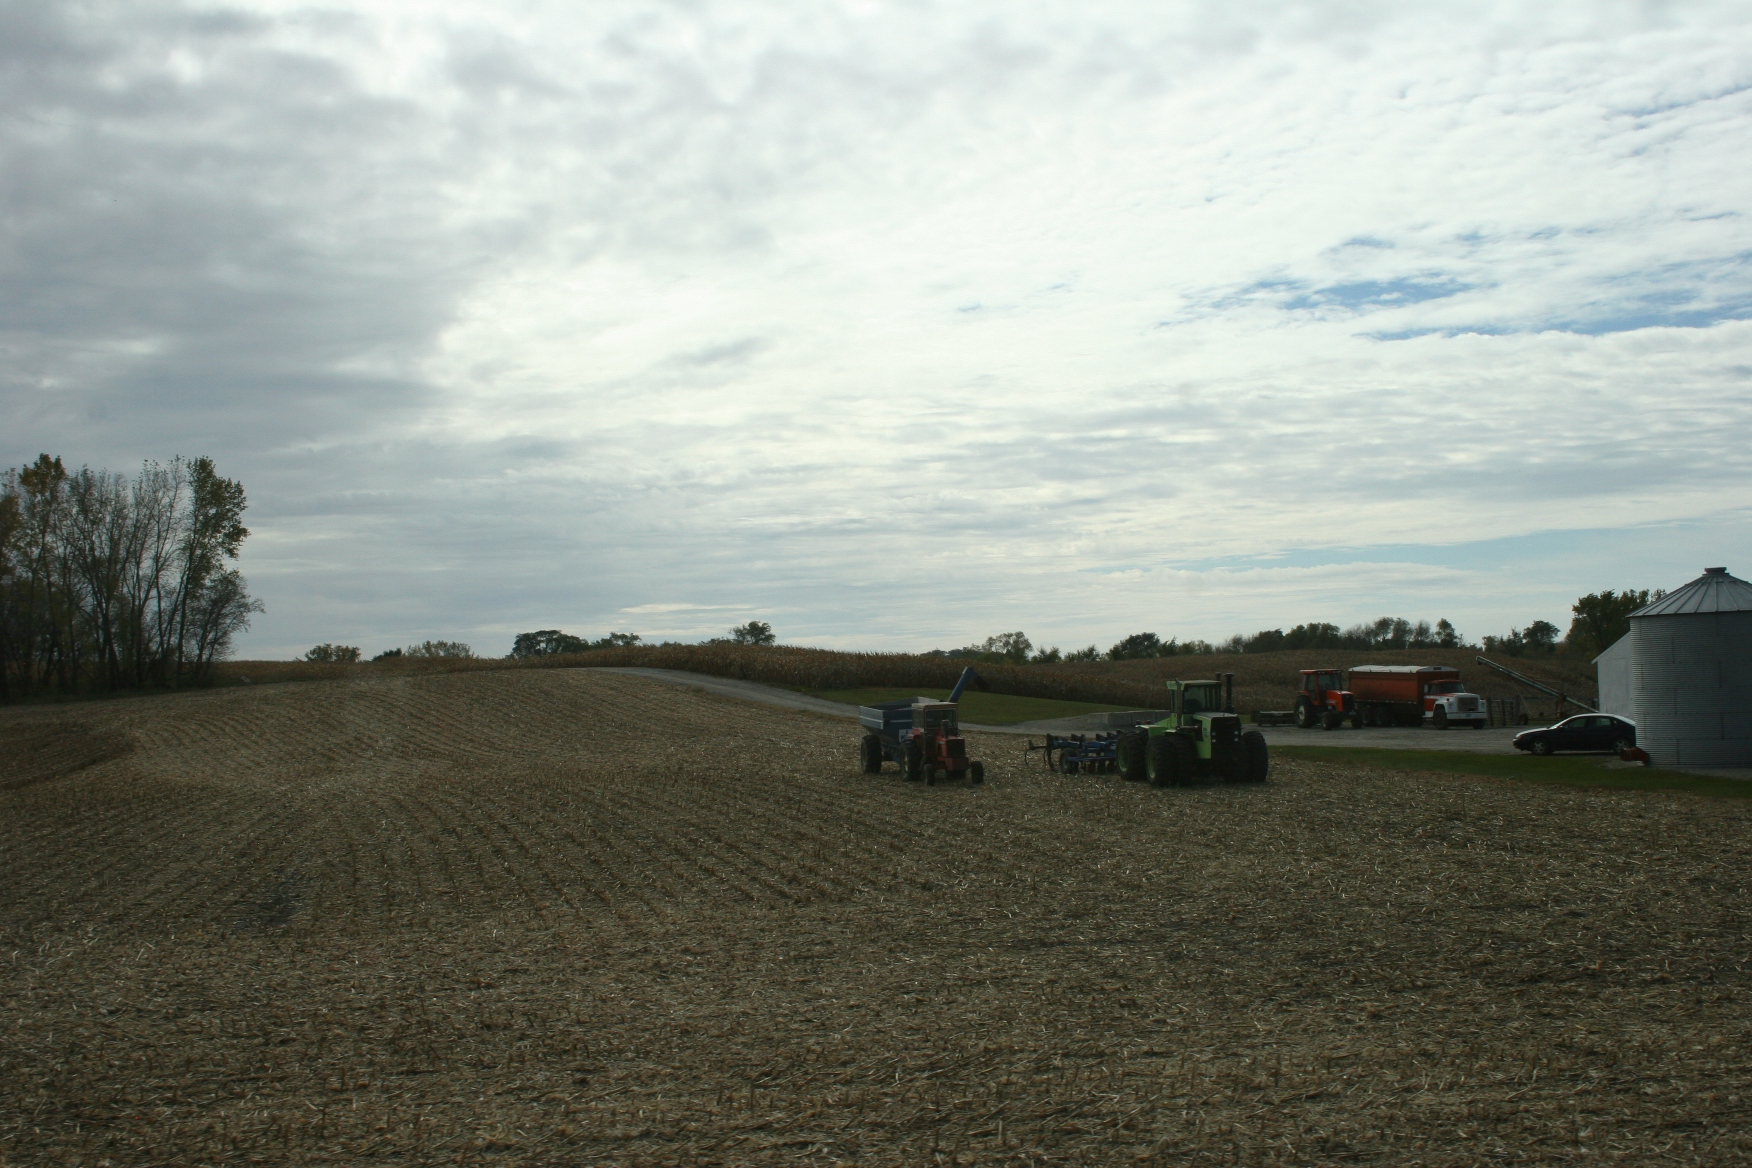 season of harvest in southeastern minnesota a photo essay east of morristown minnesota along rice county road 15